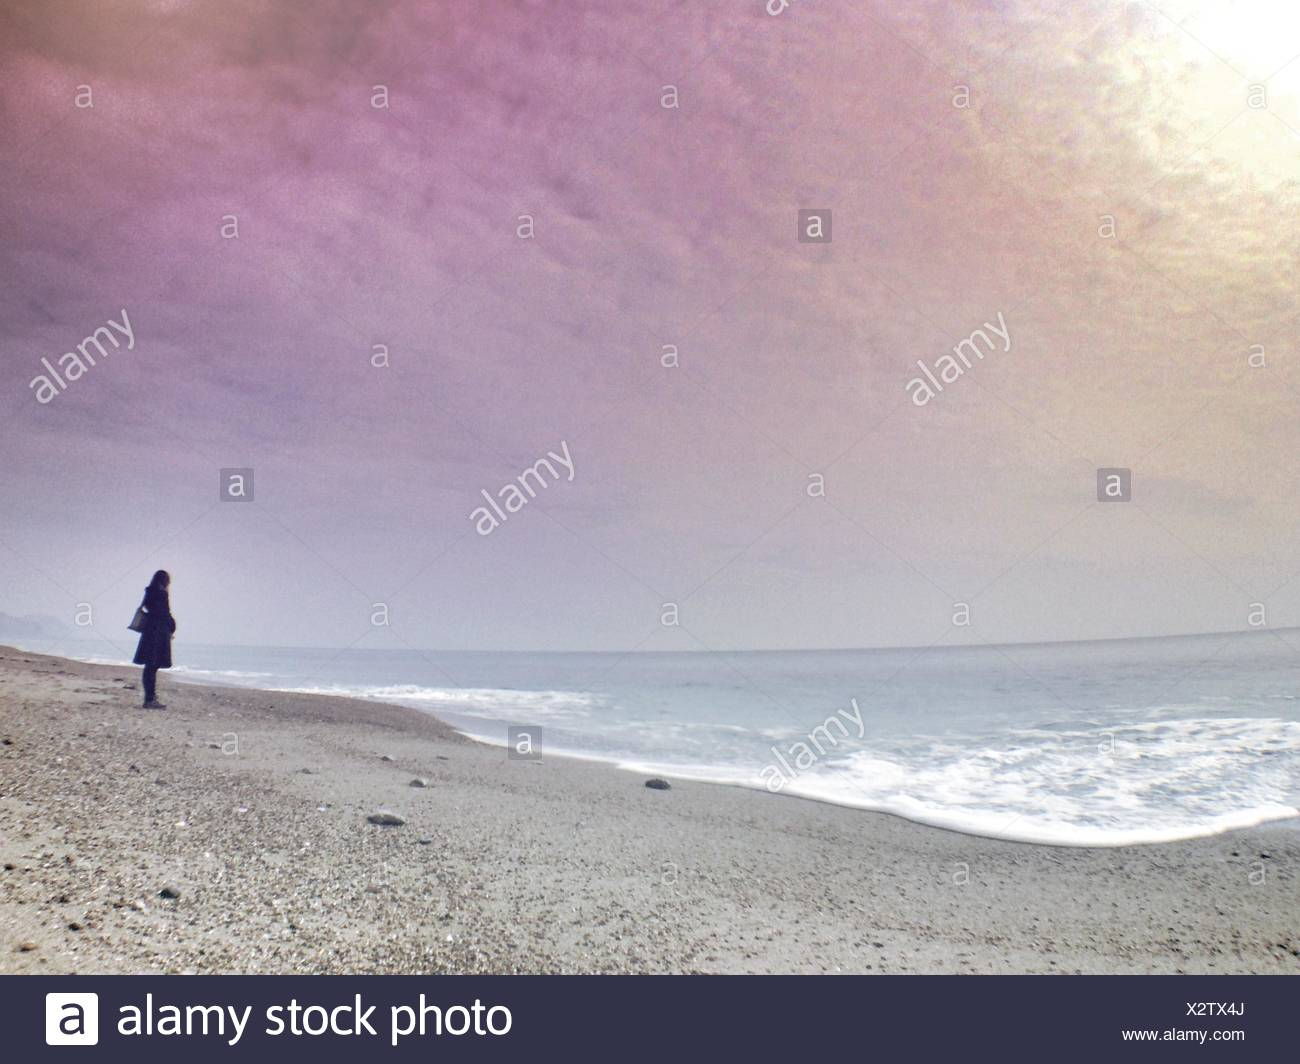 Woman Standing On Beach In Front Of Sea Against Sky During Sunset - Stock Image